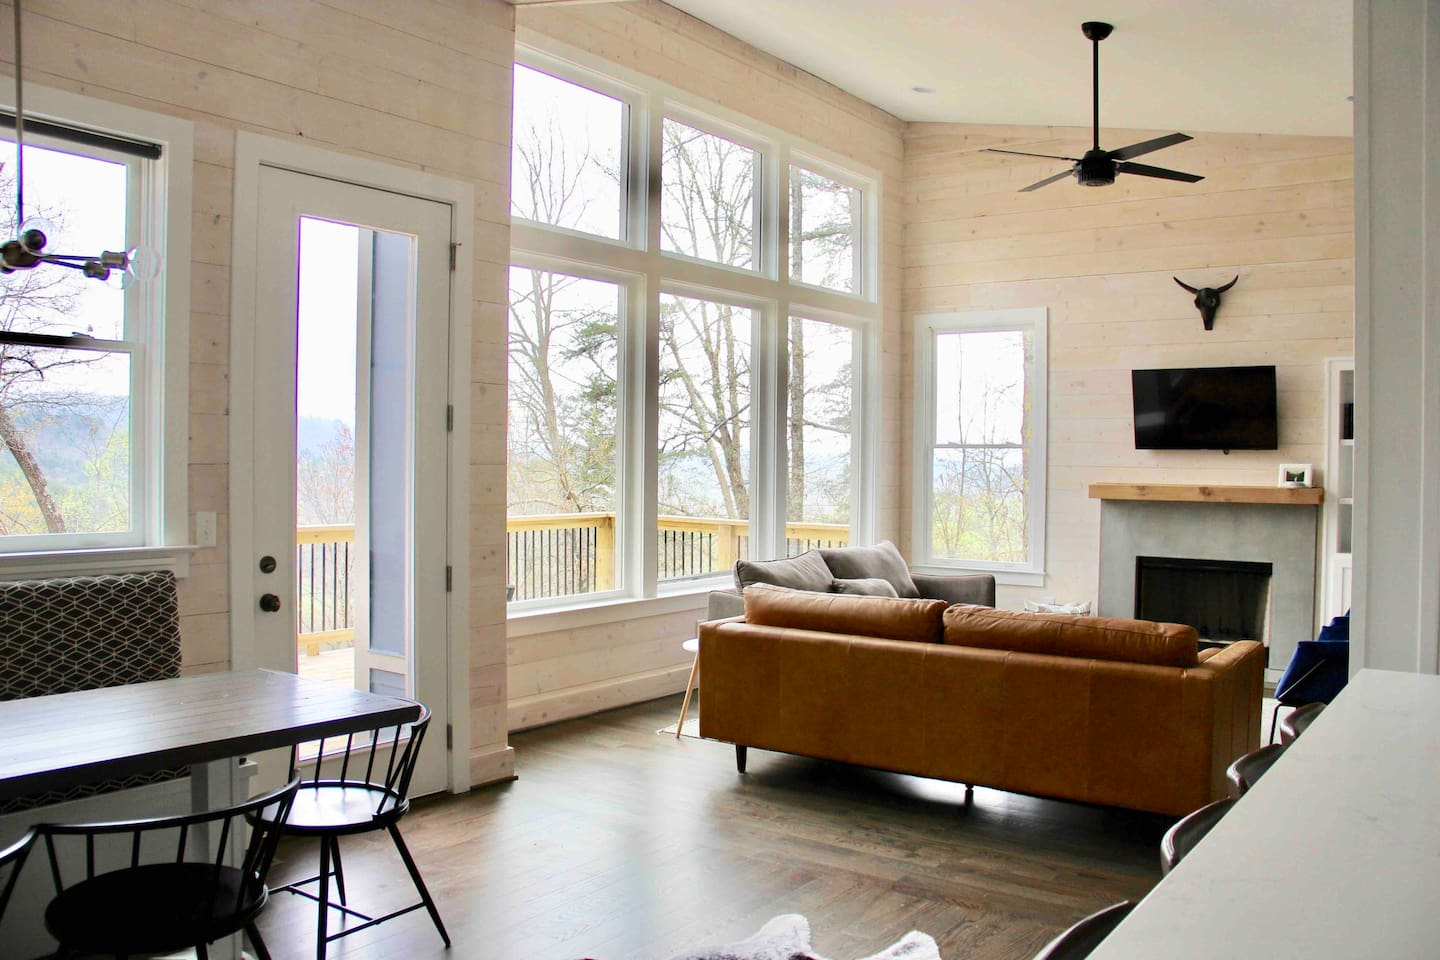 Floor to ceiling windows for you to enjoy the view